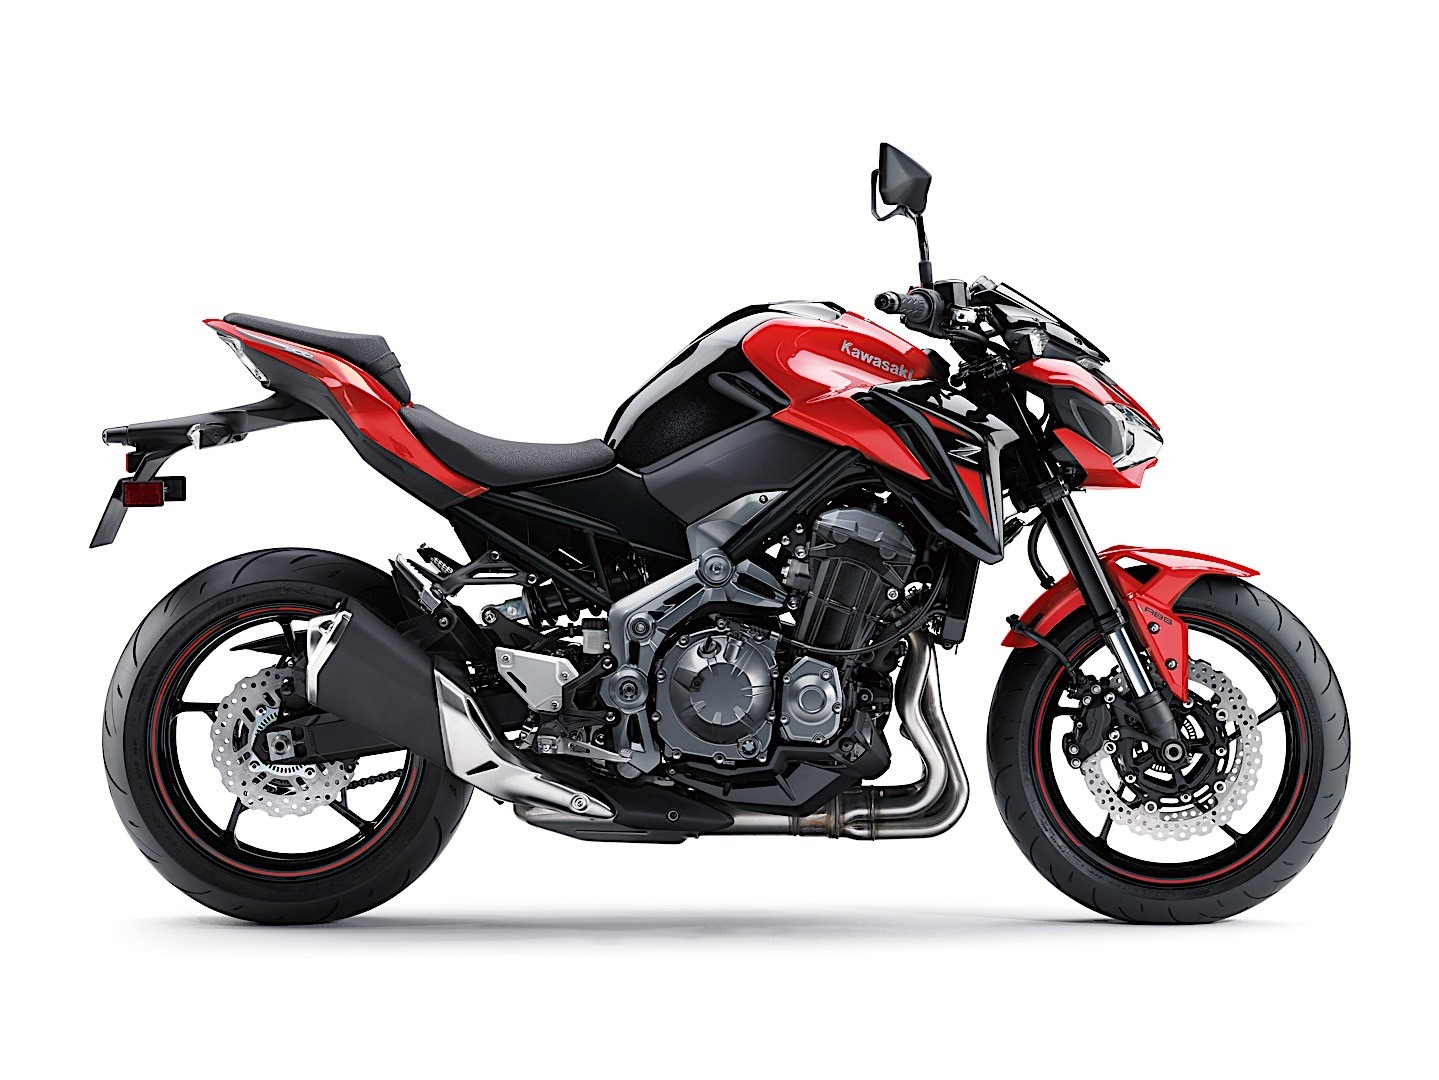 latest bikes prices, images, specification, details : kawasaki